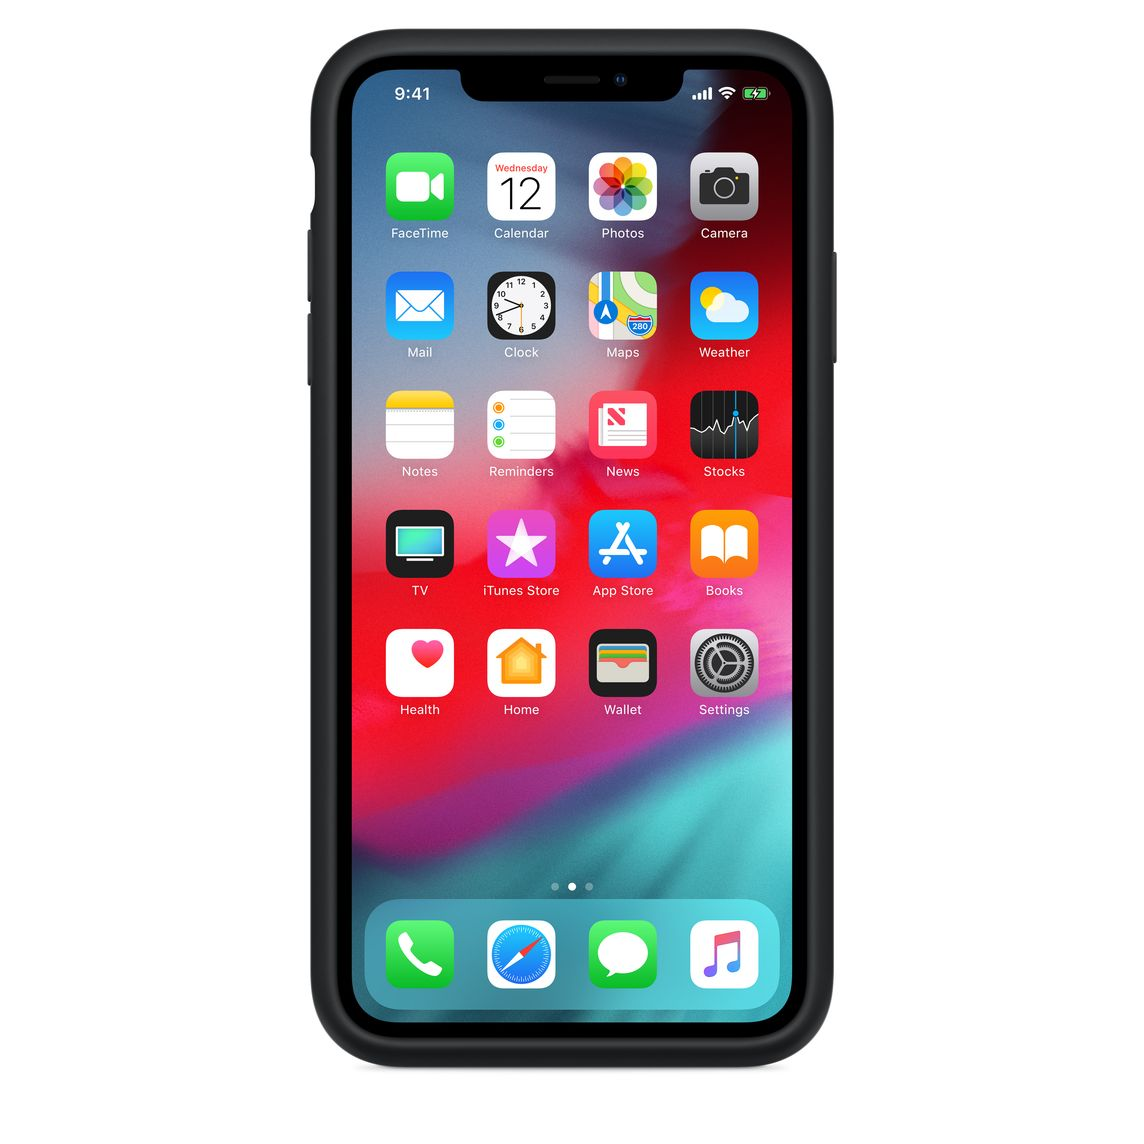 timeless design 3186c ac324 iPhone XS Max Smart Battery Case - Black